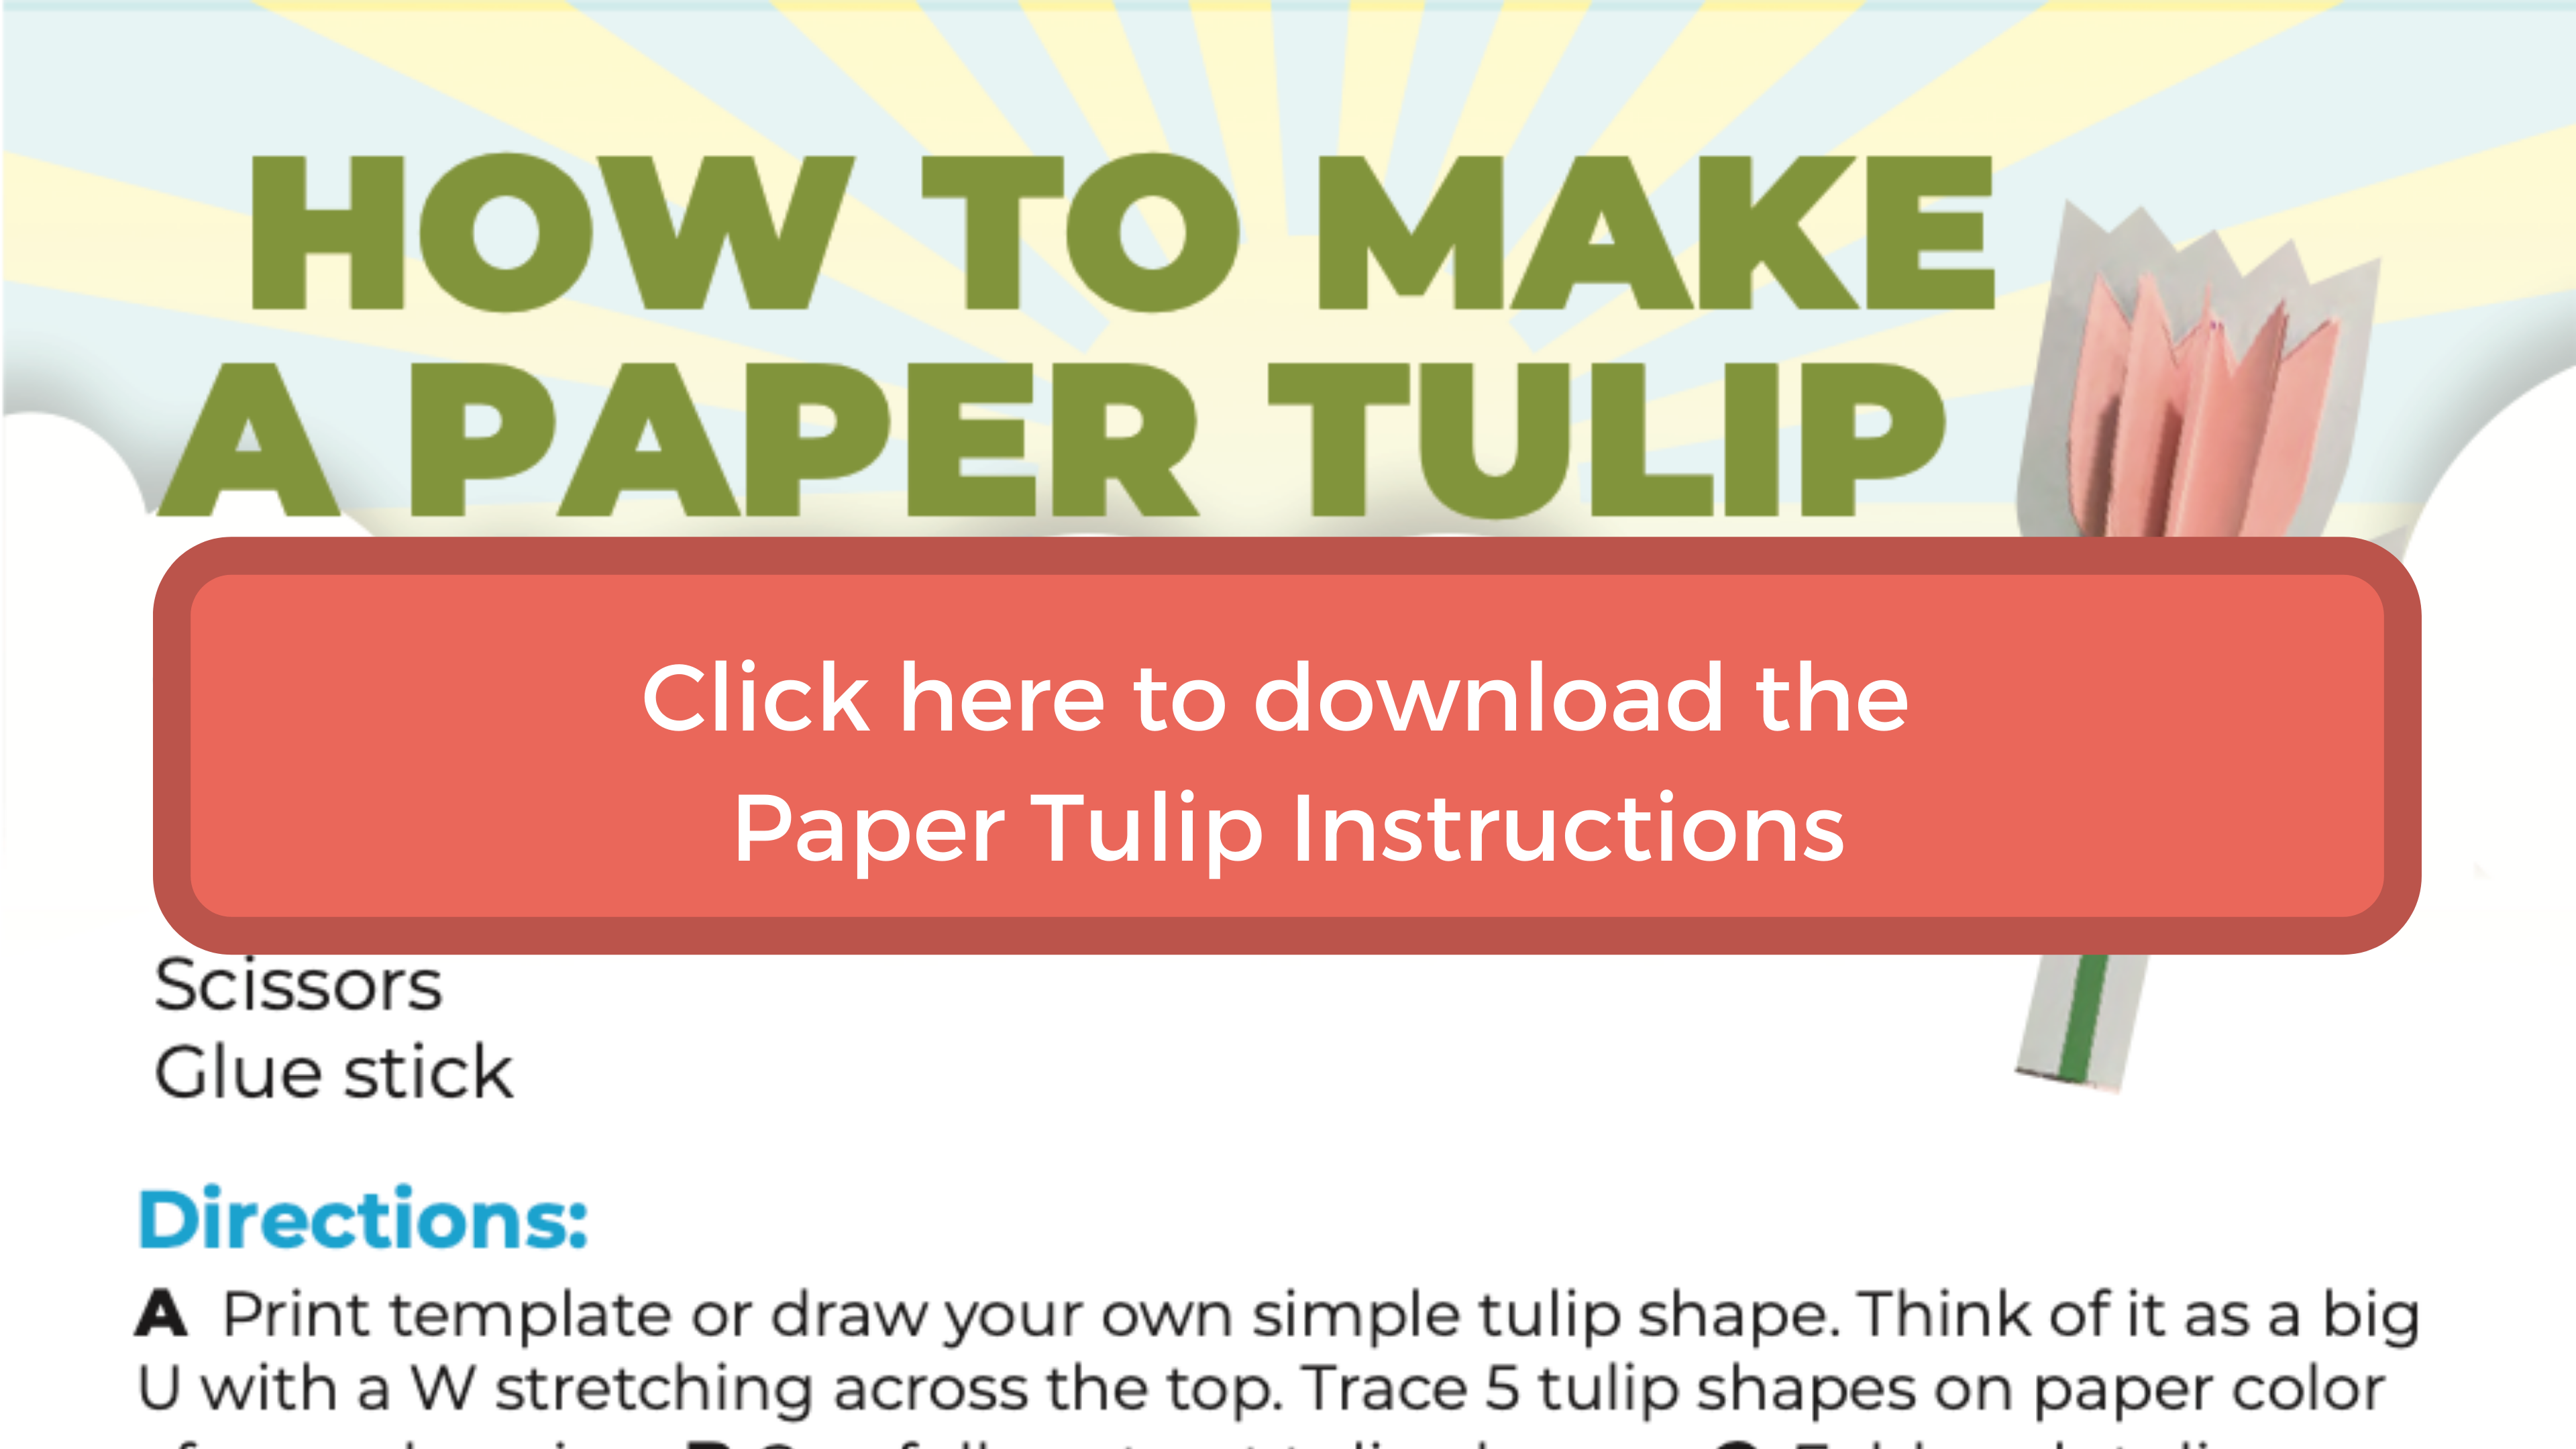 click here to download the paper tulip instructions